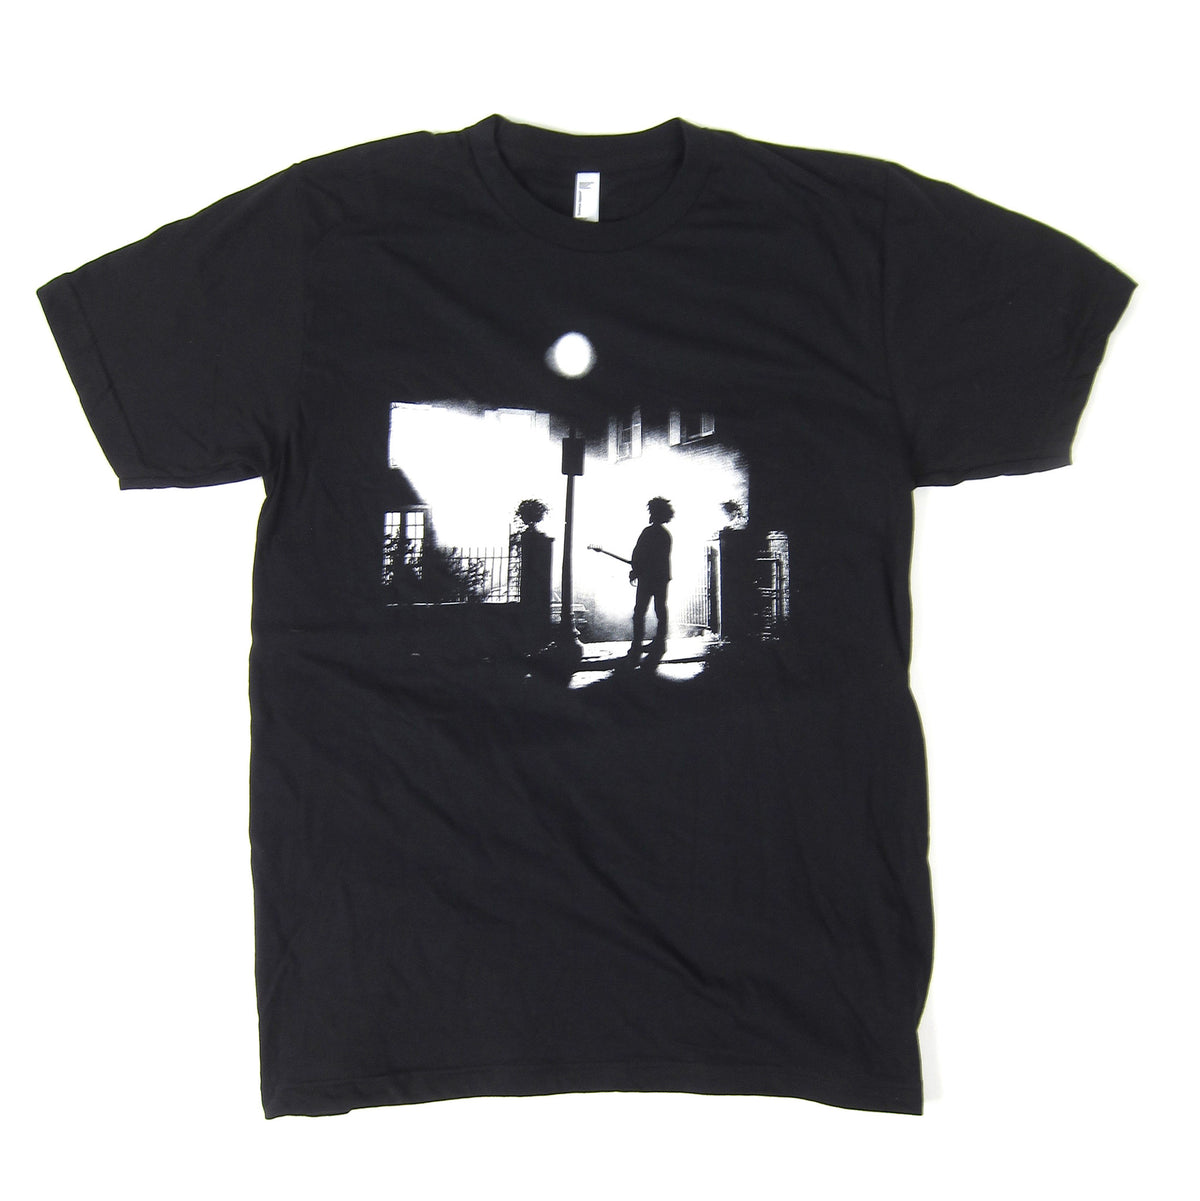 Wear Dinner: Curexorcist Shirt - Black